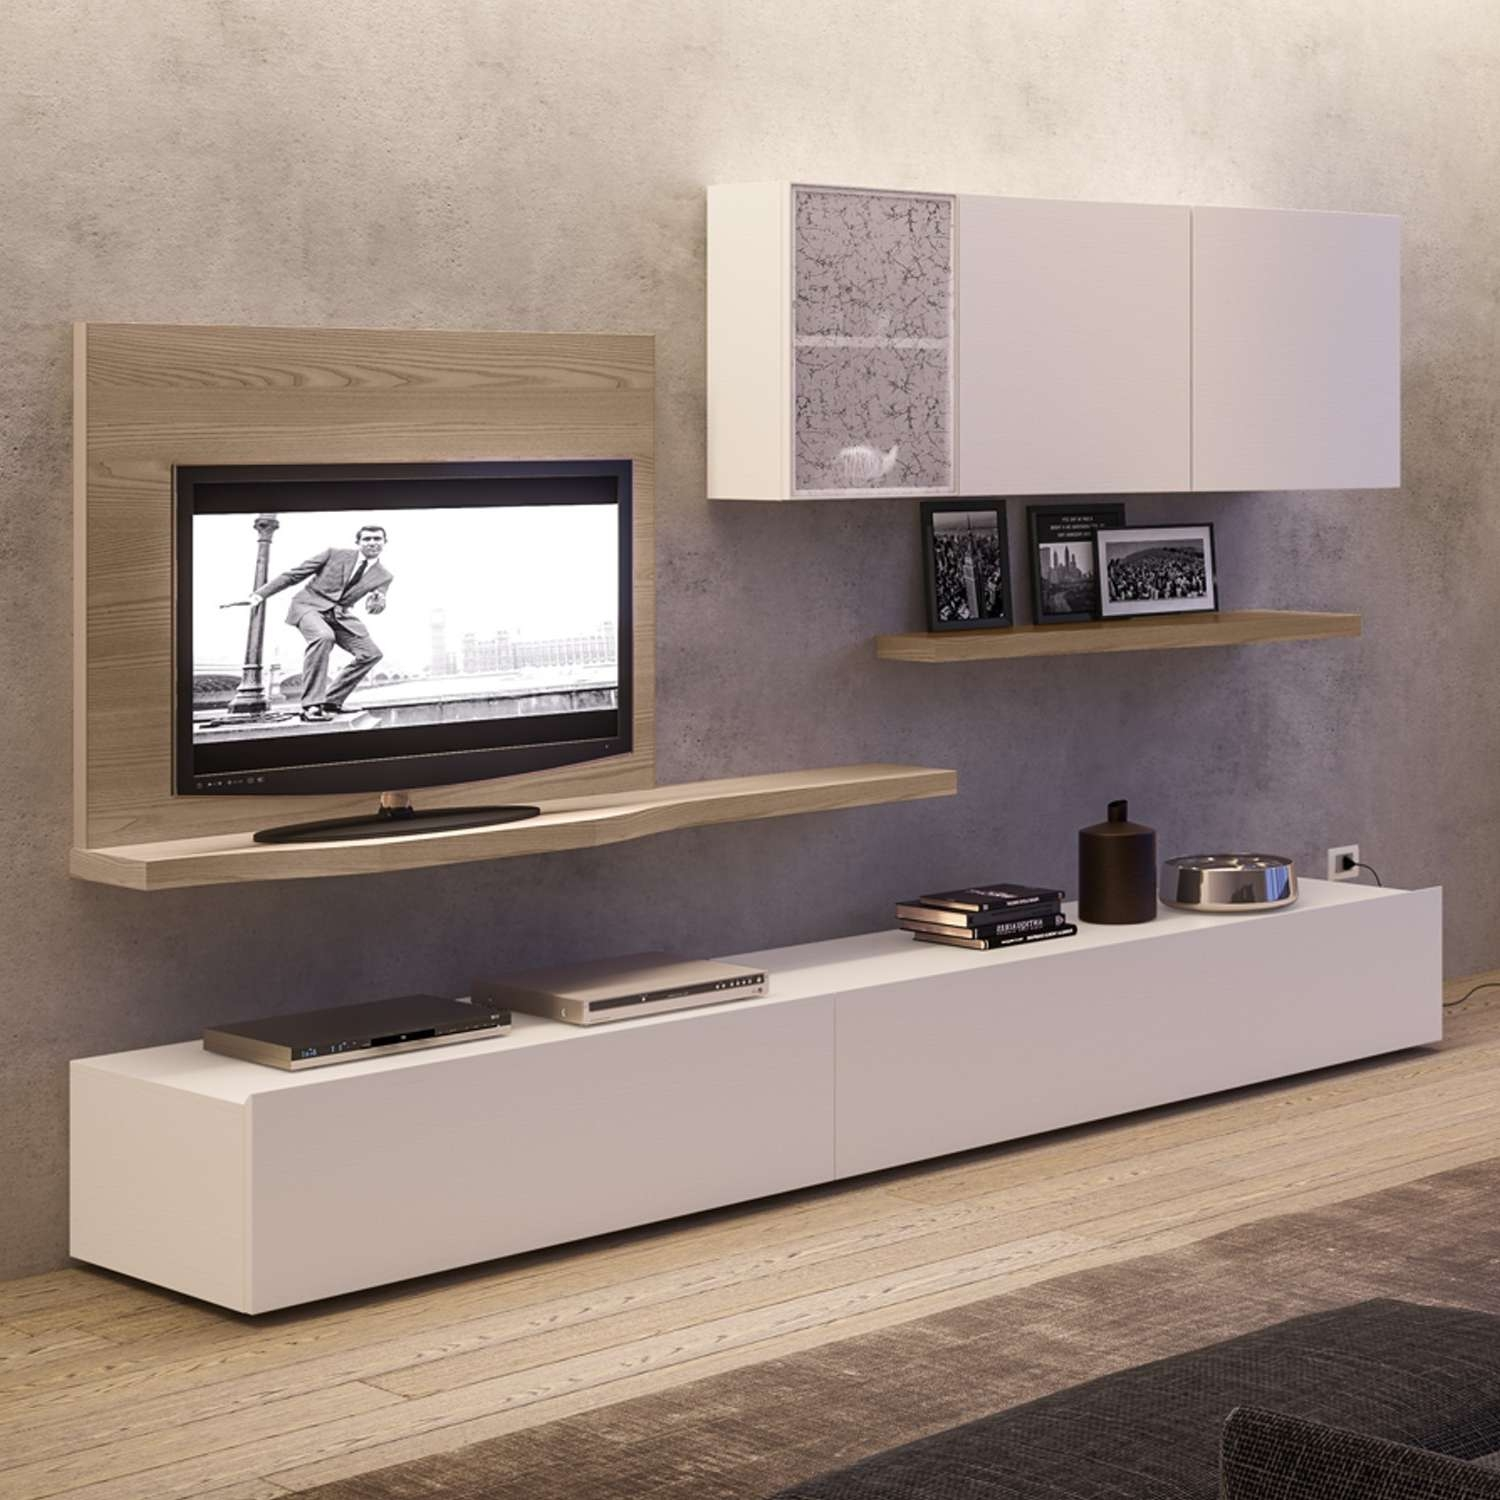 Excellent Modular Tv Stand With Storage Showcasing Mounting Wall Throughout Modular Tv Stands Furniture (View 2 of 15)